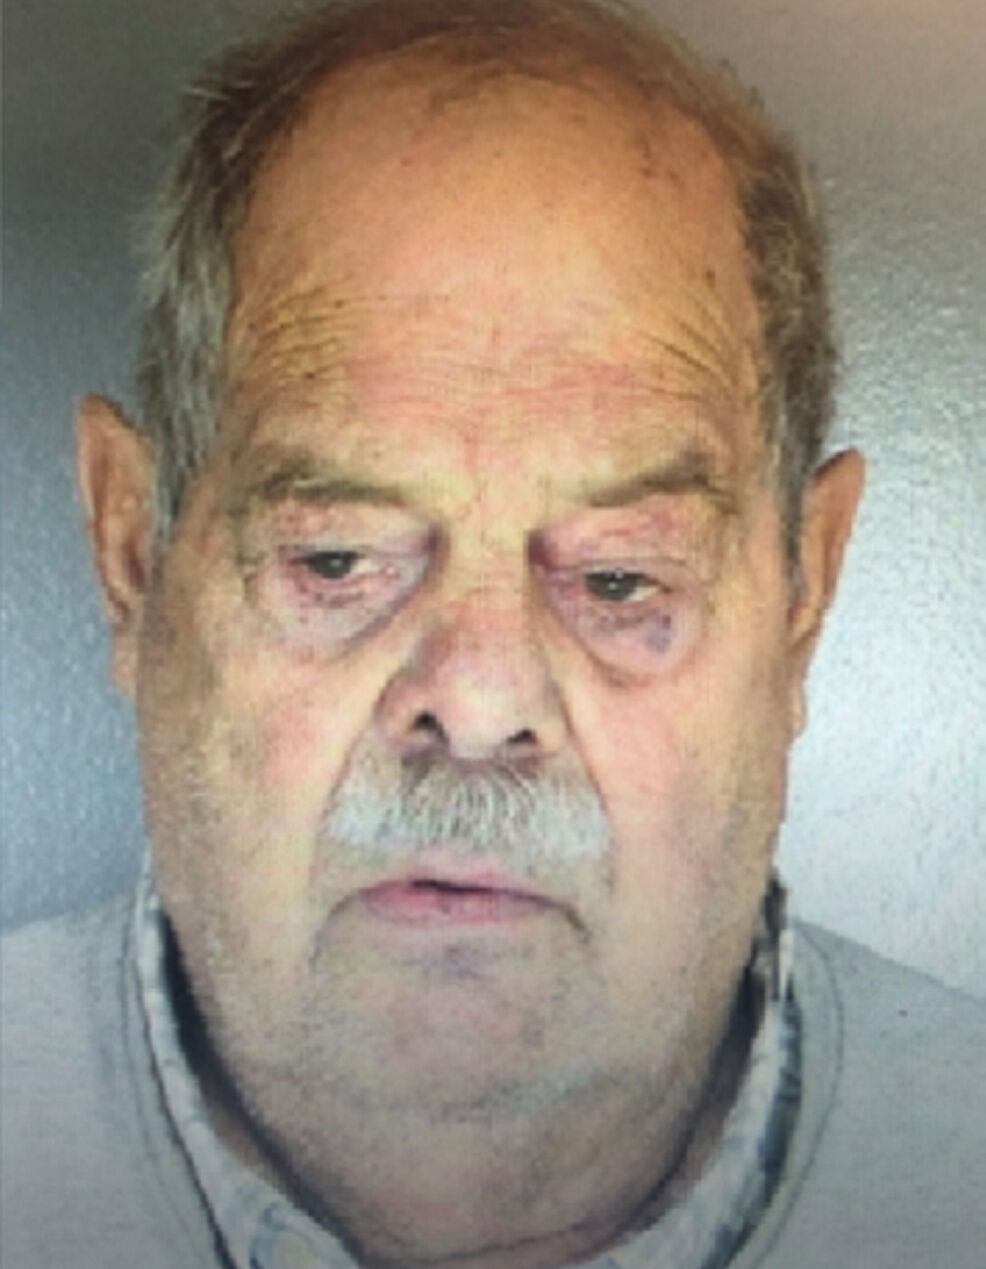 Sheriff: Horse owner charged with cruelty